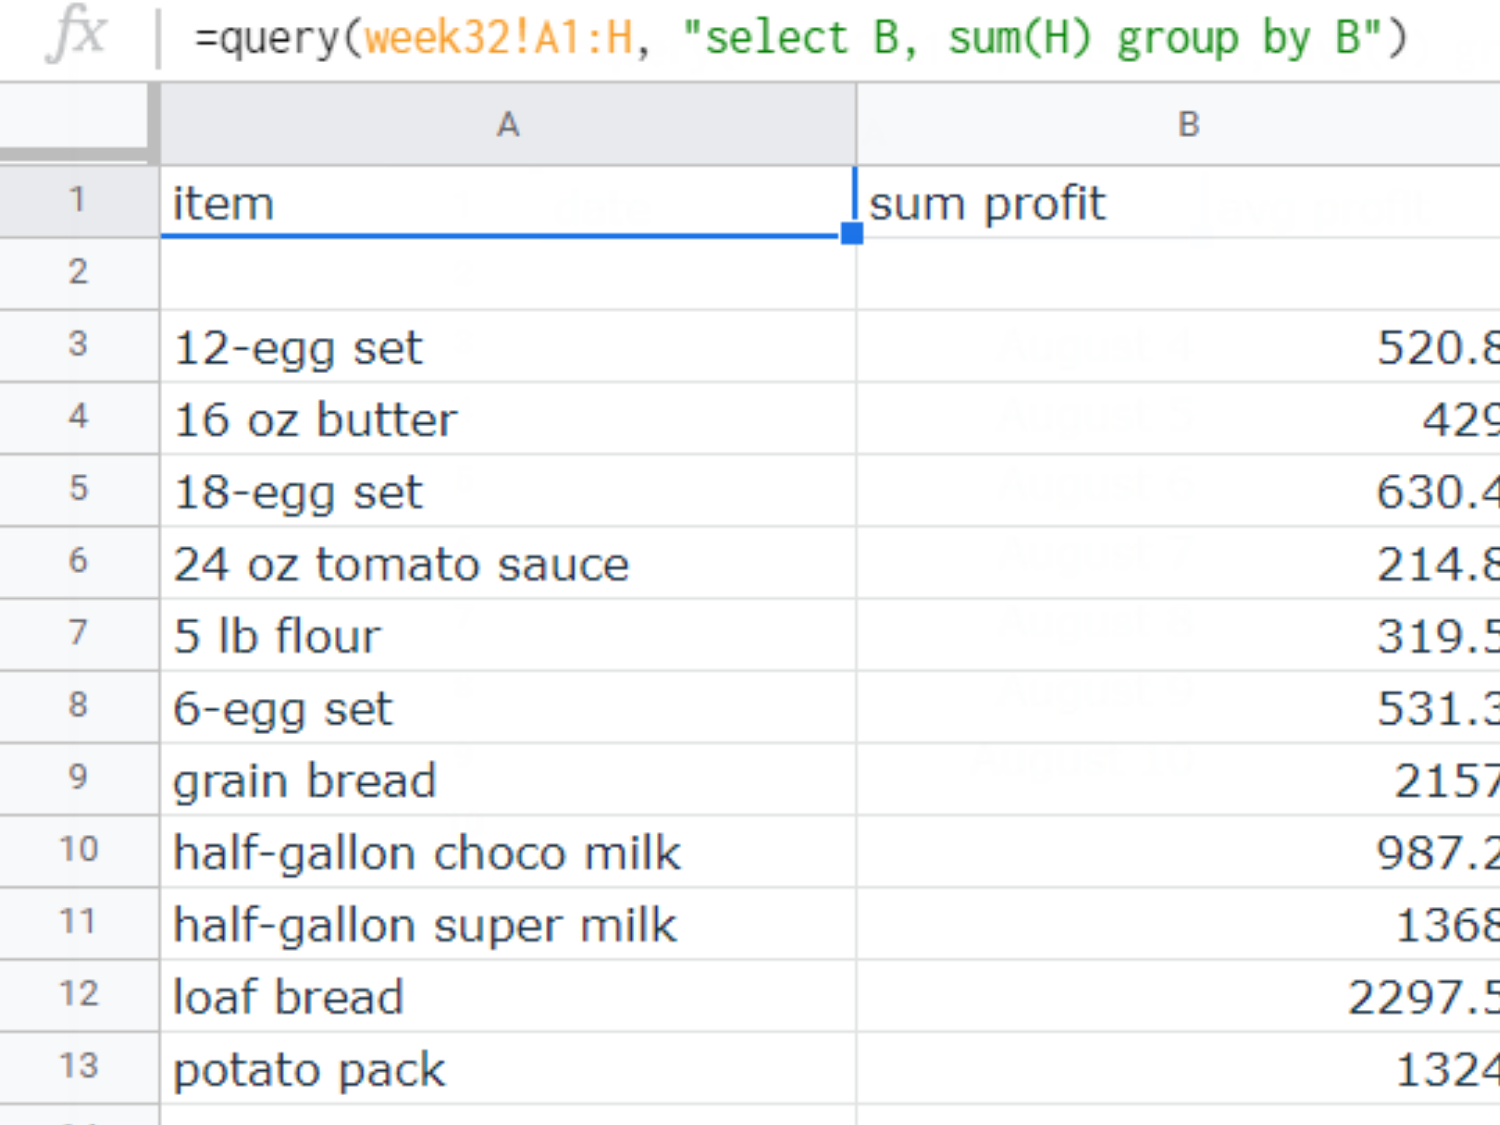 "Results of the query. The first column contains the specific item, the second column contains the ""sum profit"" per listed item."